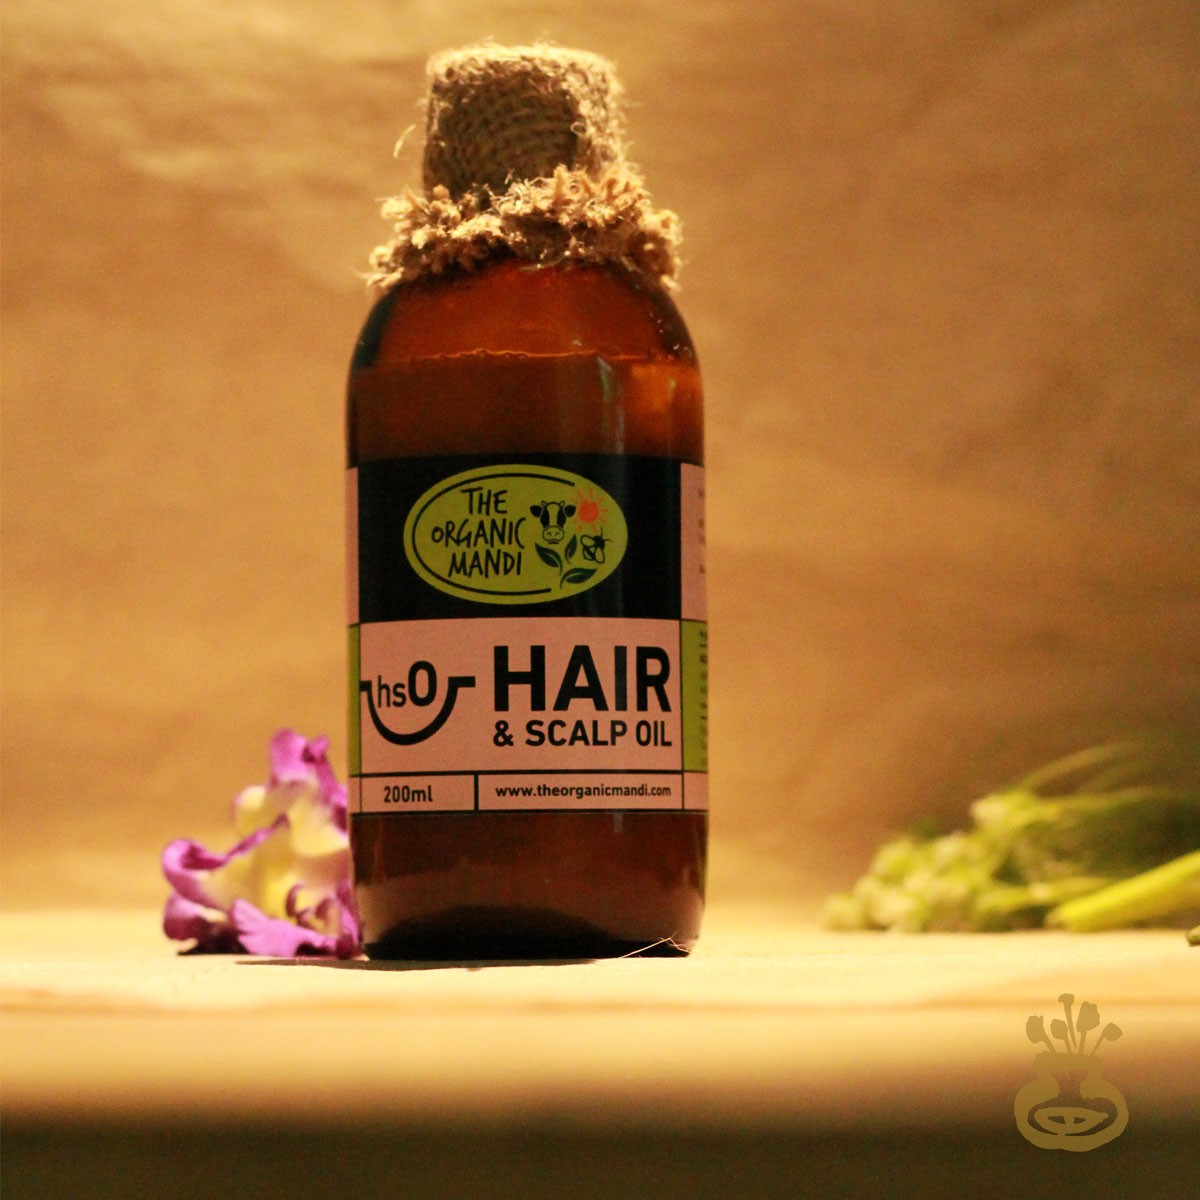 Hair and Scalp Oil (200ml)